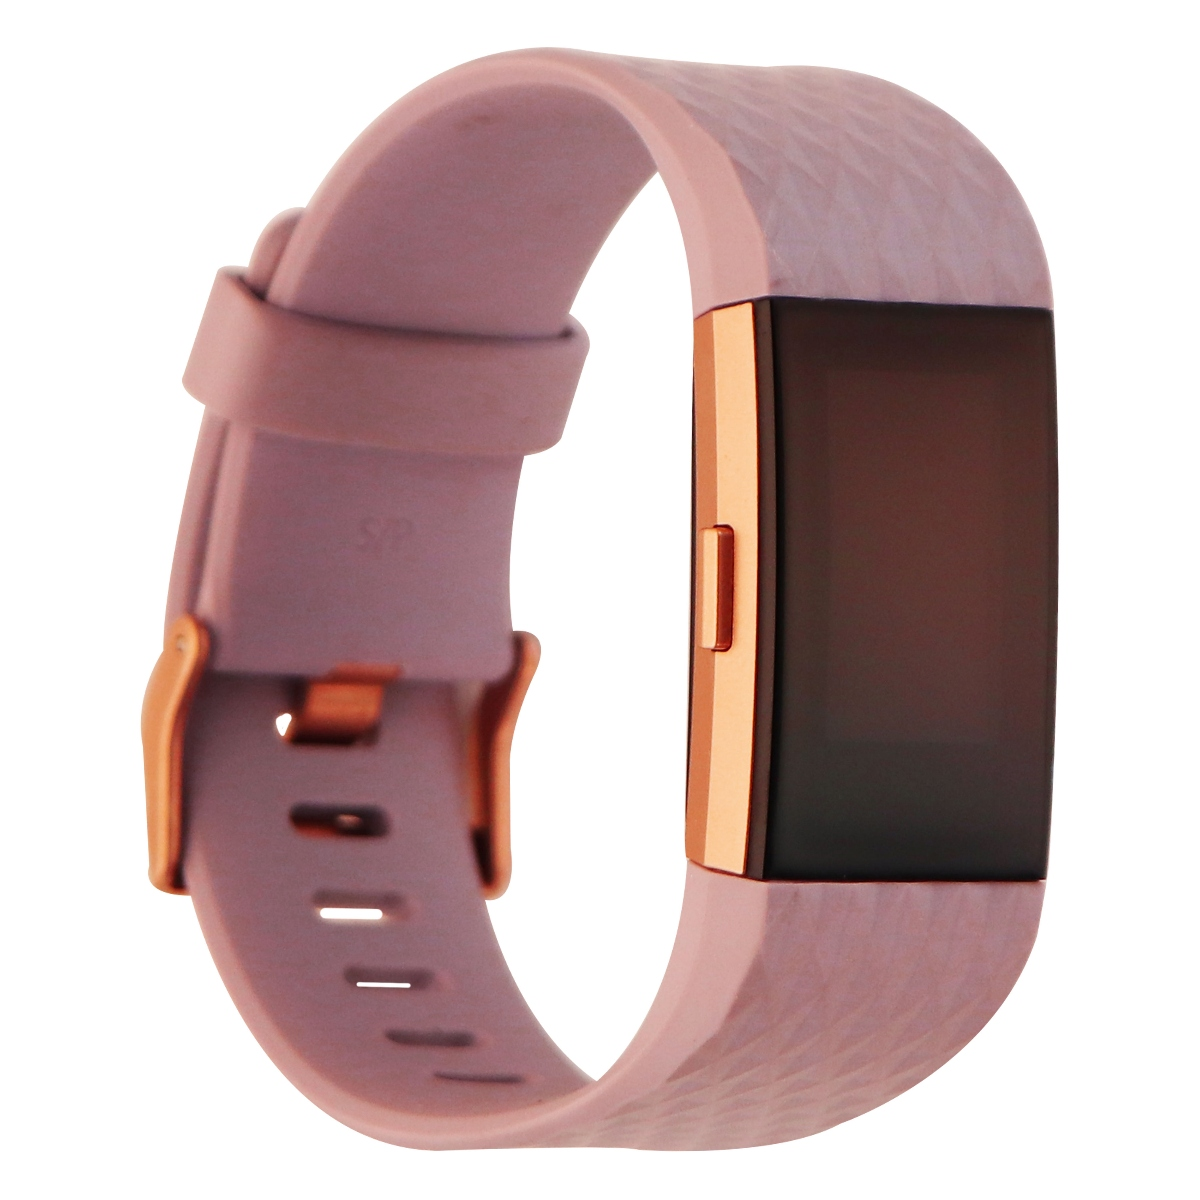 Fitbit Charge 2 Series Heart Rate + Fitness Wristband - Lavender Rose Gold/Small